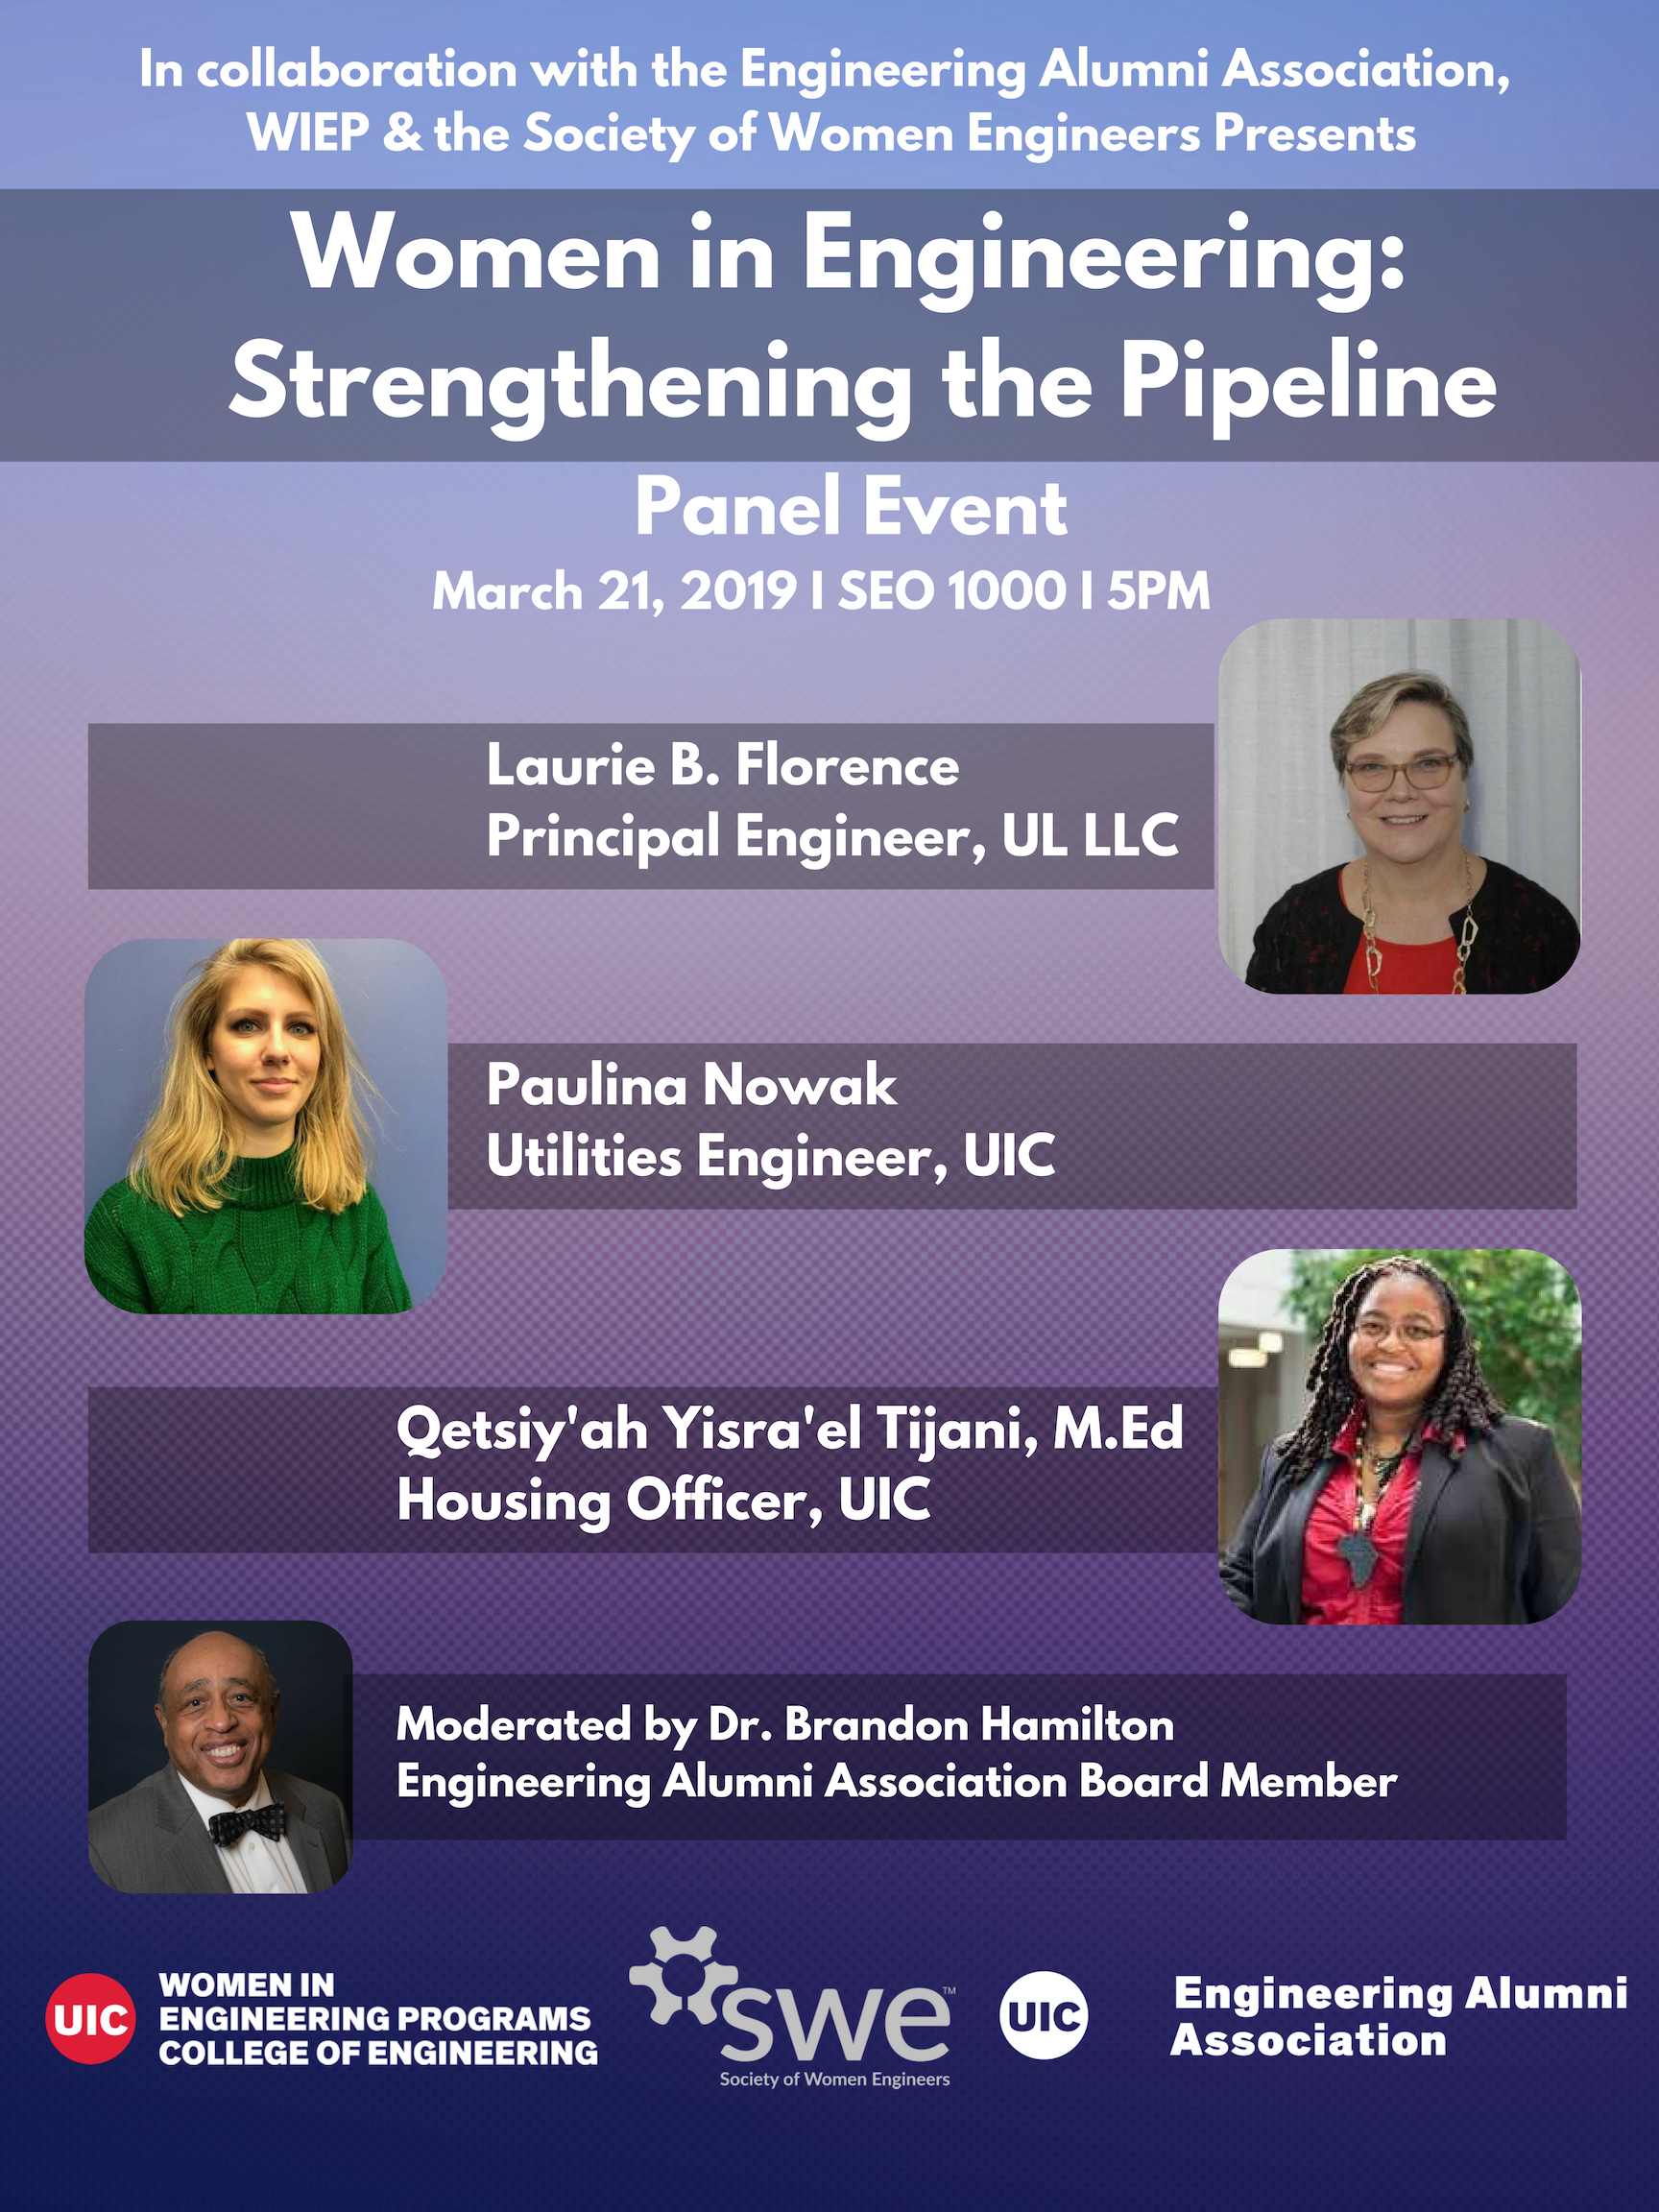 WIEP SWE_ Women in Engineering_ Strengthening the Pipeline.png